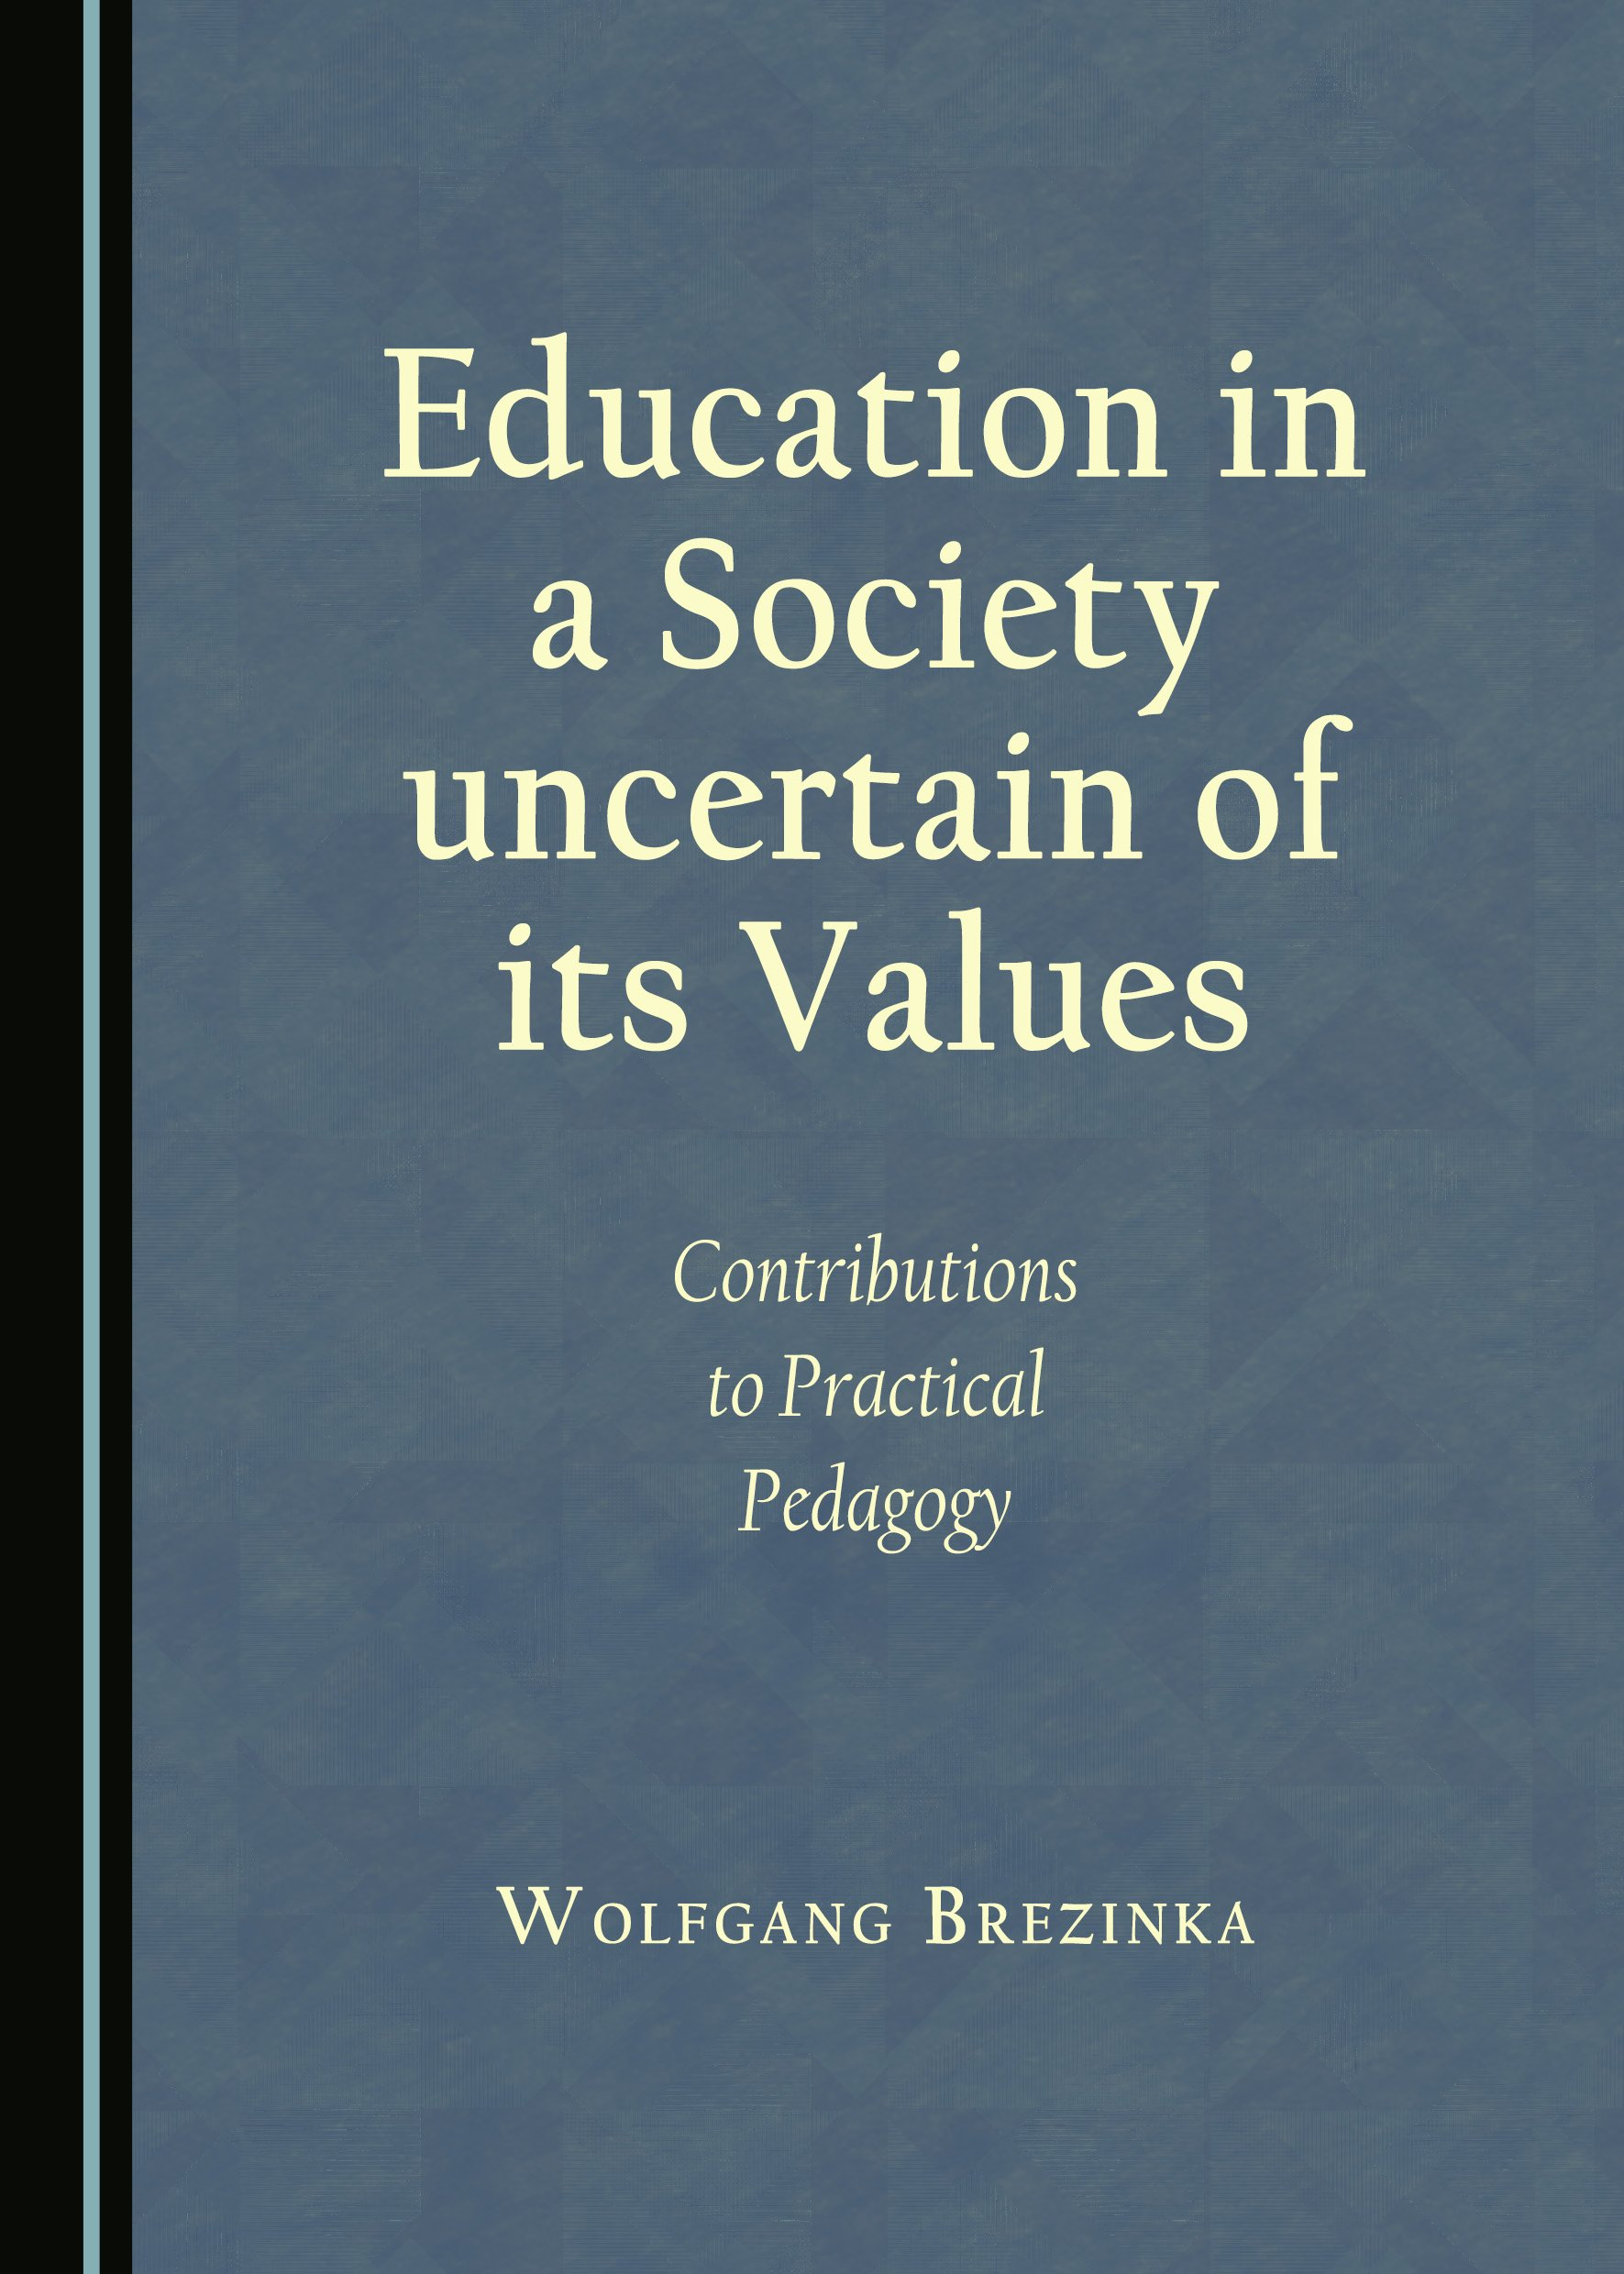 Education in a Society uncertain of its Values: Contributions to Practical Pedagogy